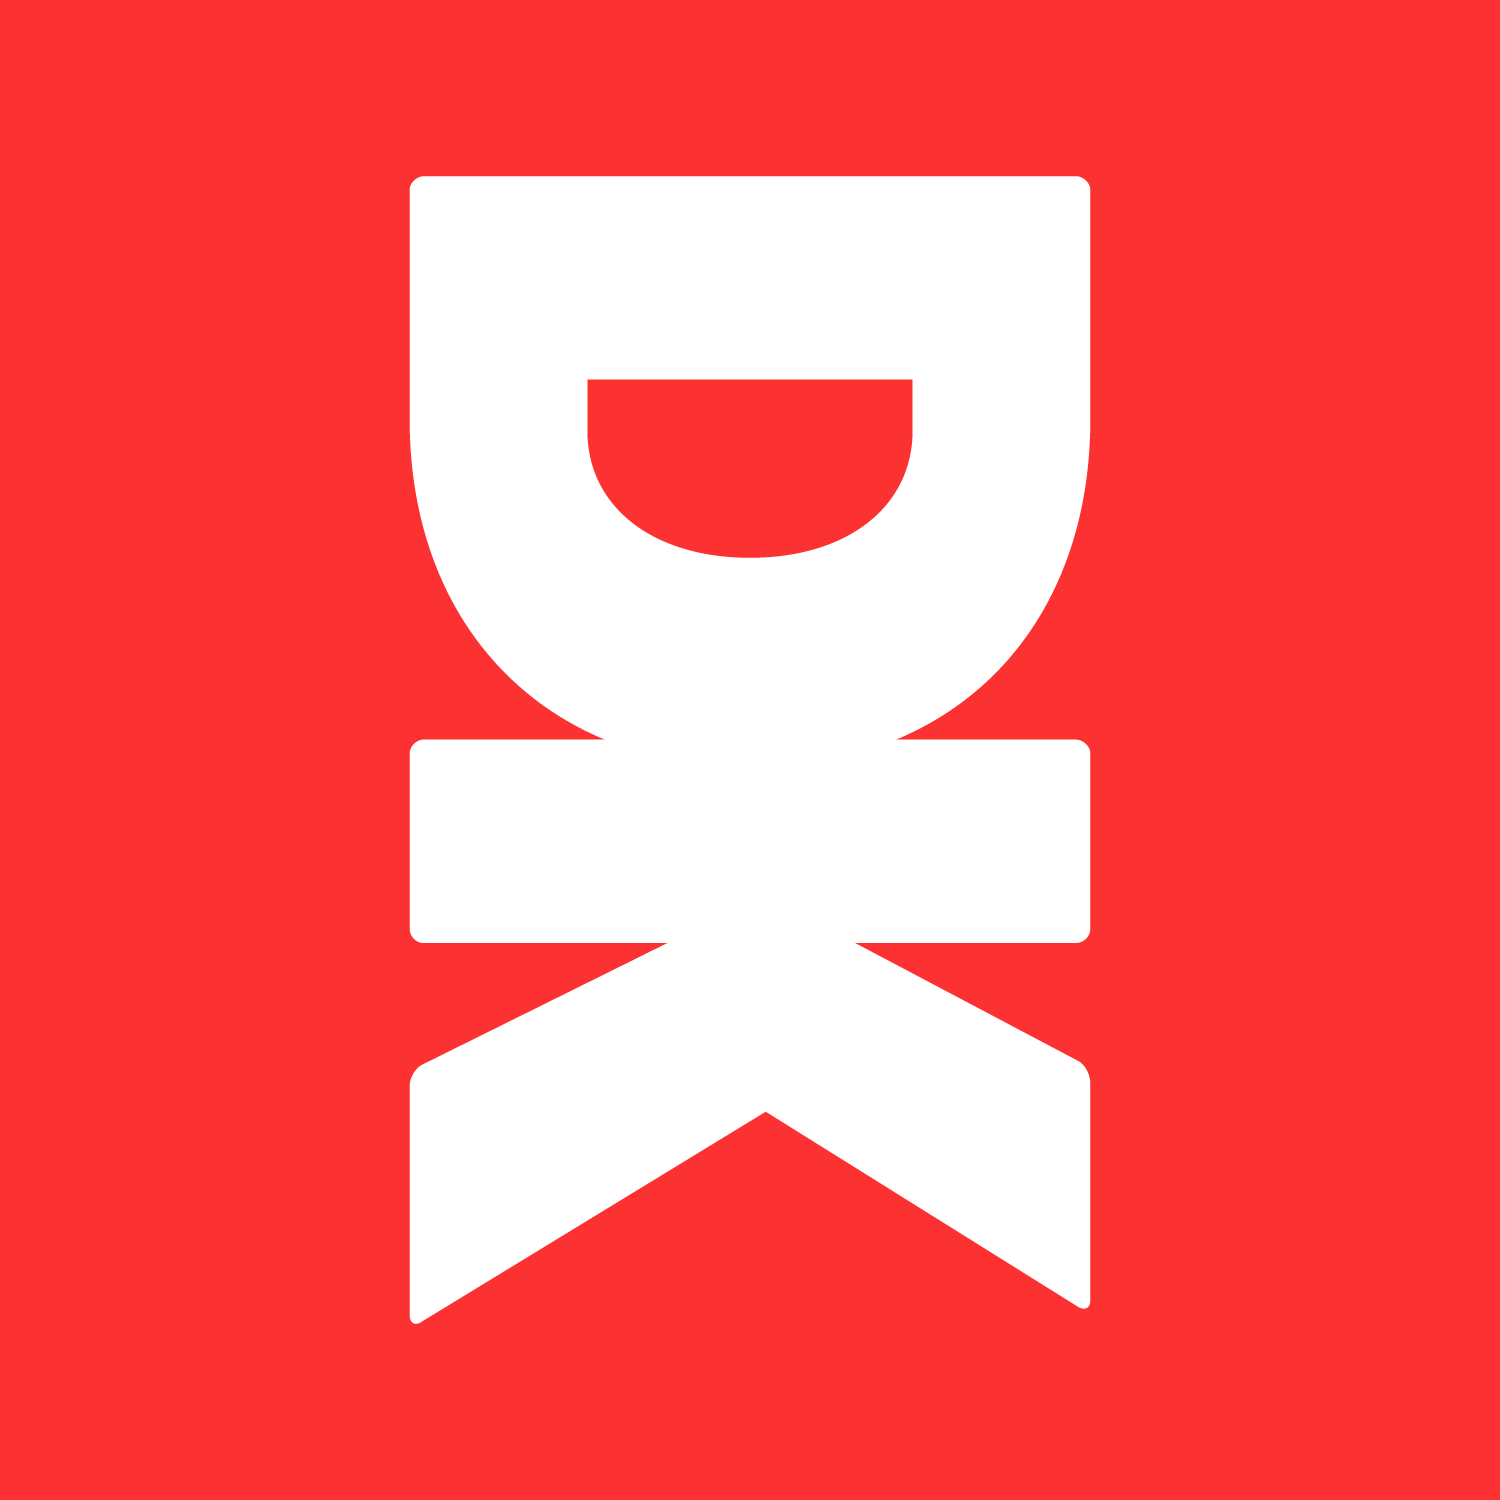 The Sites logo which is a red square with a white glyph in the middle. The glyph is made up of the letters D and K stacked vertically.